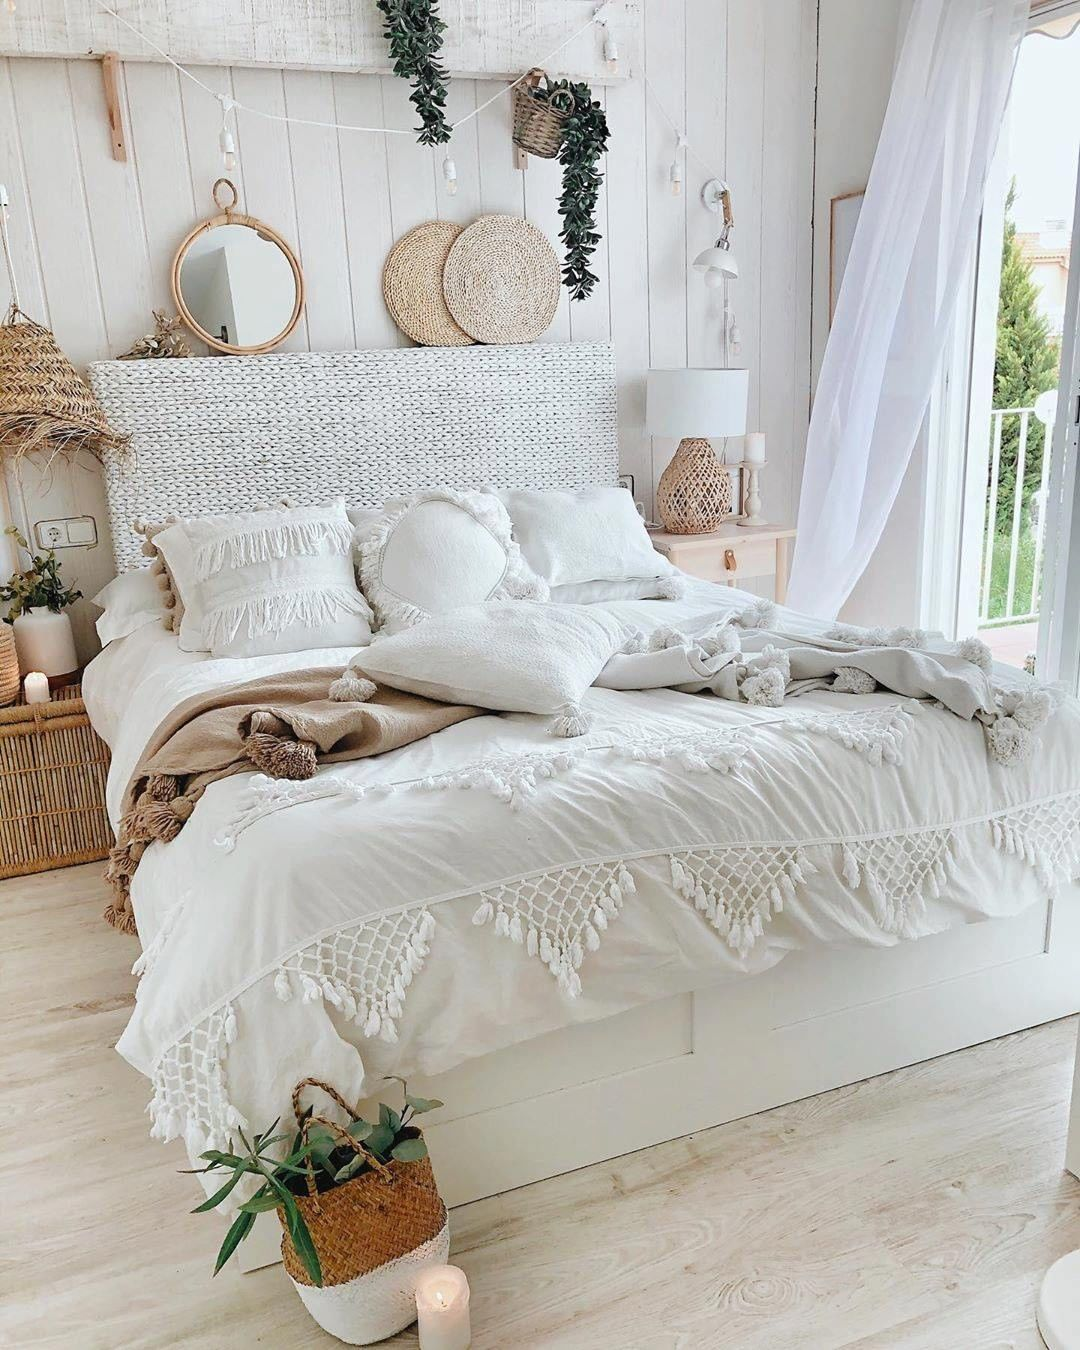 30 Mind Blowing Small Bedroom Decorating Ideas